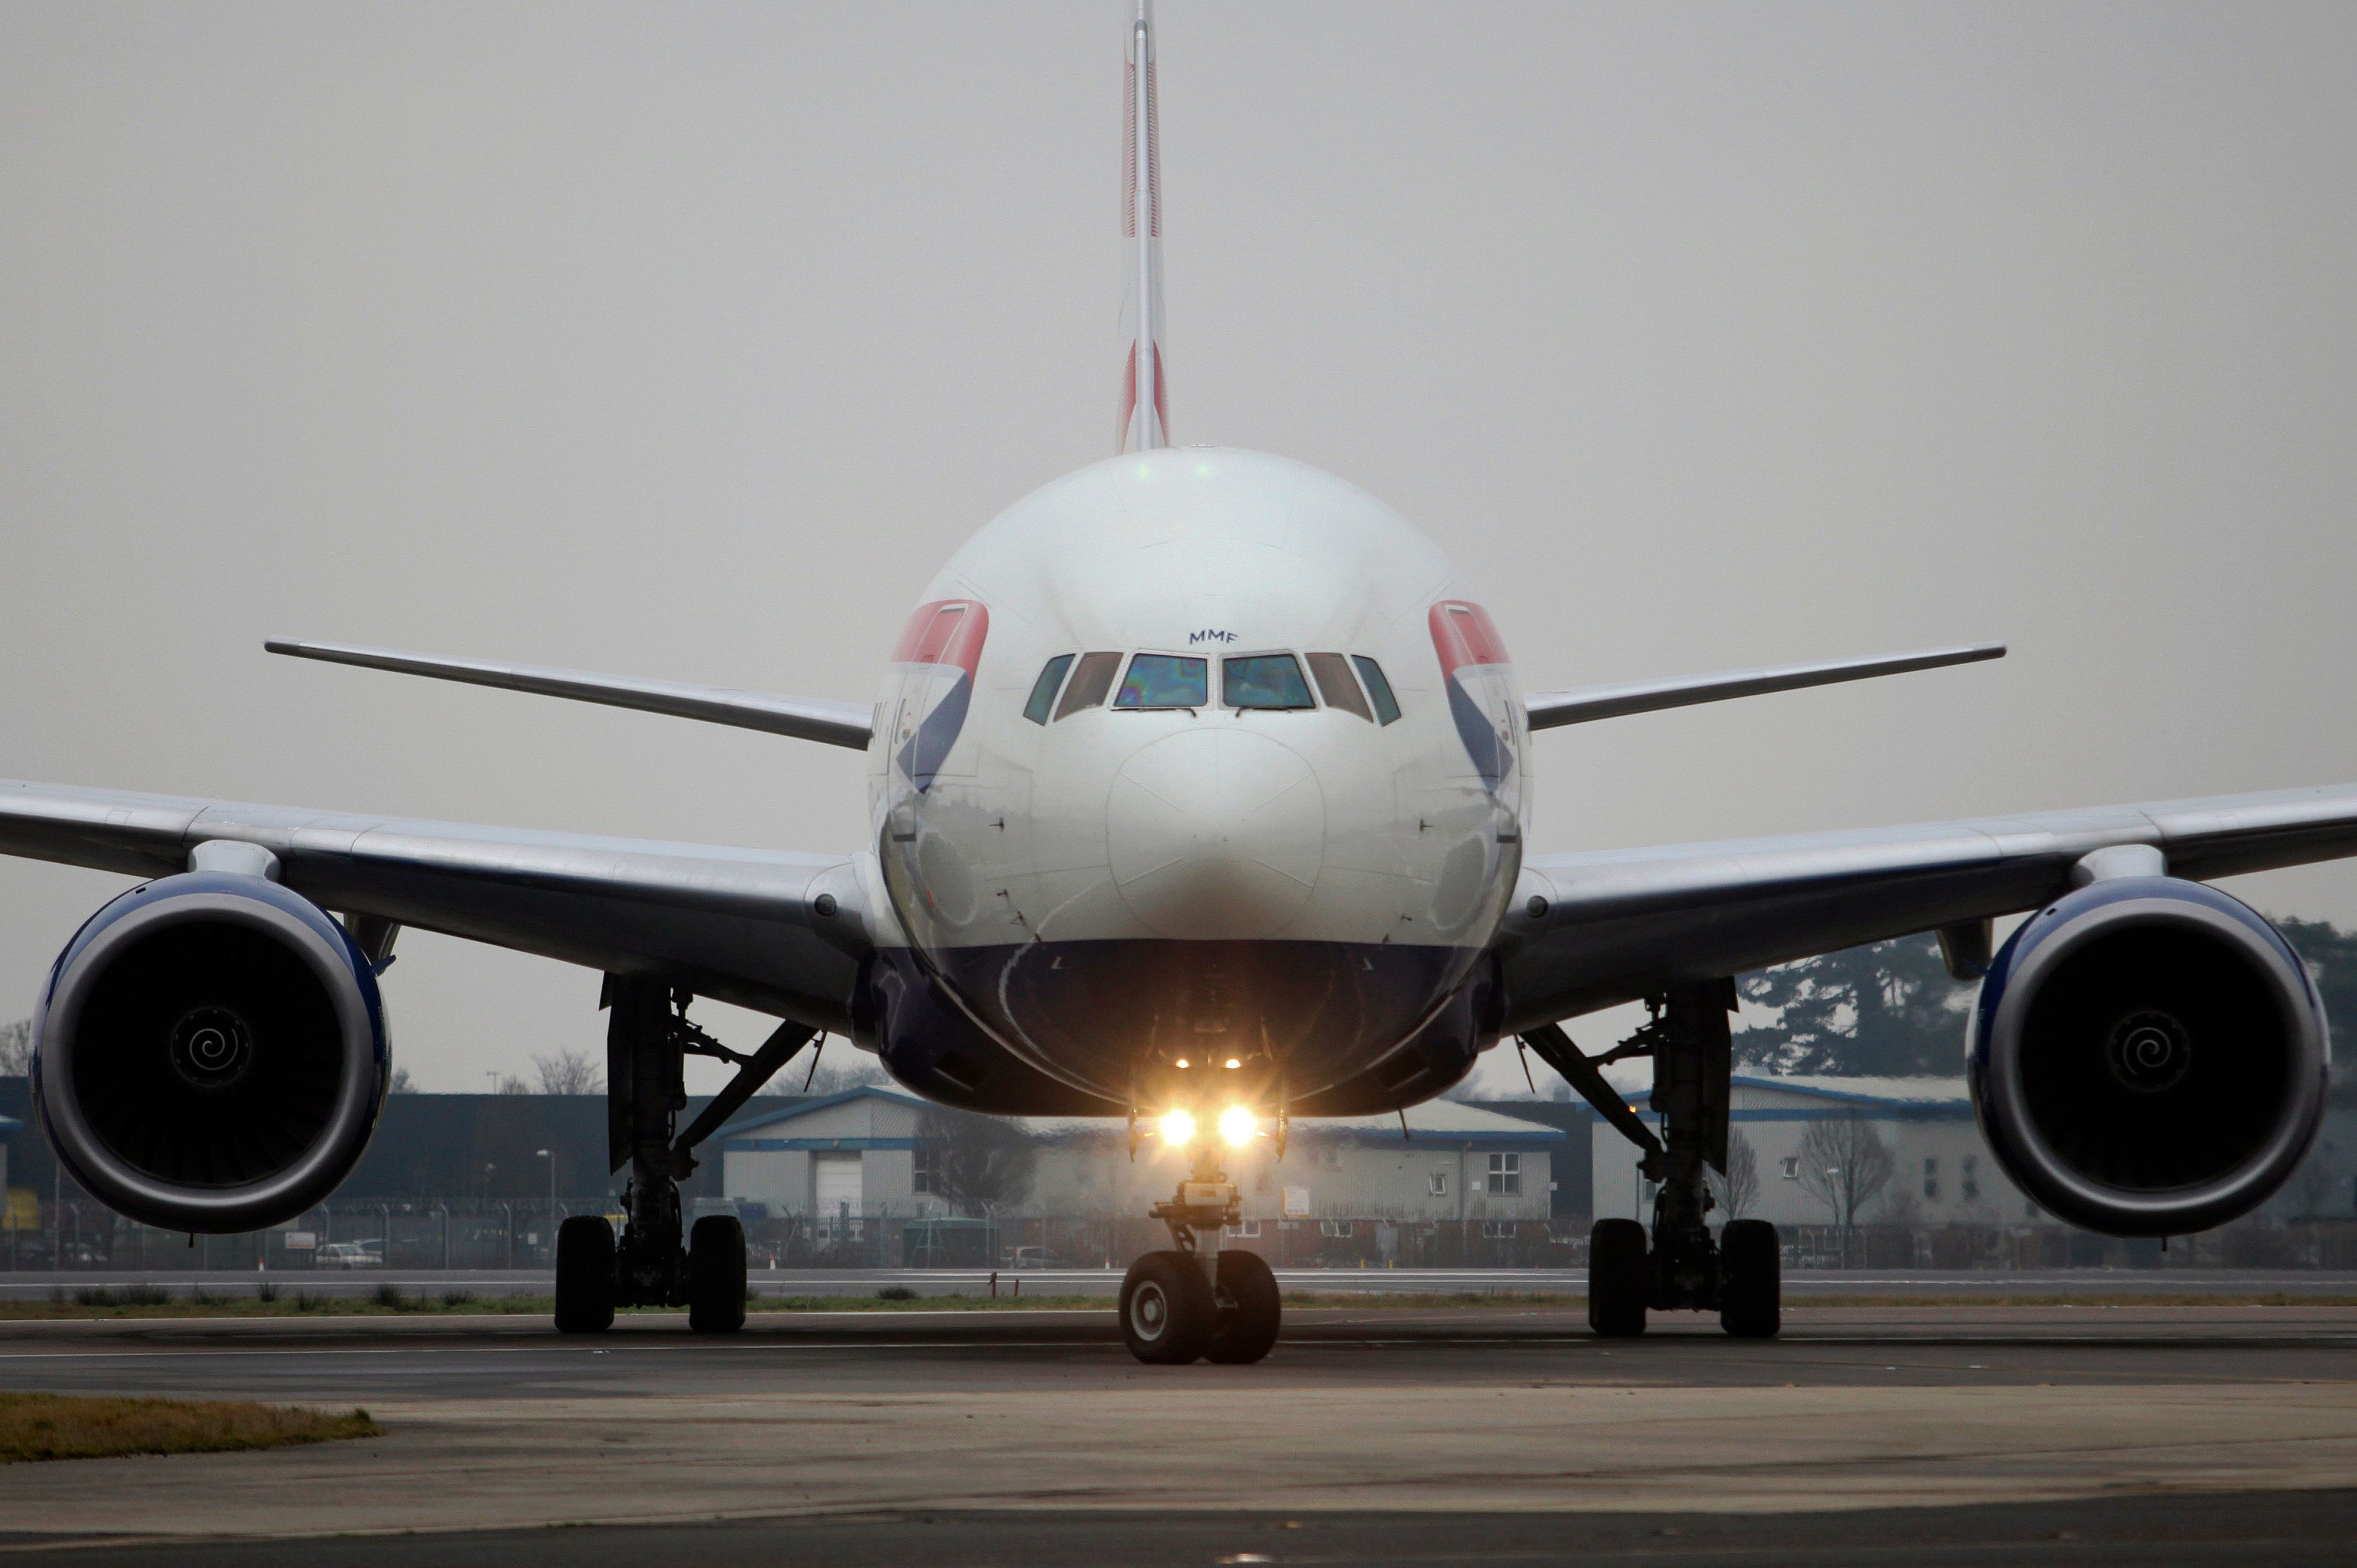 A British Airways aircraft taxis on the tarmac at Gatwick airport in Crawley, U.K., on Thursday, Jan. 10, 2013. Gatwick, acquired by Global Infrastructure Partners Ltd. in 2009 after regulators sought a breakup of BAA Ltd., owner of the larger Heathrow hub, is 30 miles (48 kilometers) south of London and serves about 200 destinations, more than any other U.K. airport, according to flight schedule data provider OAG. Photographer: Chris Ratcliffe/Bloomberg via Getty Images